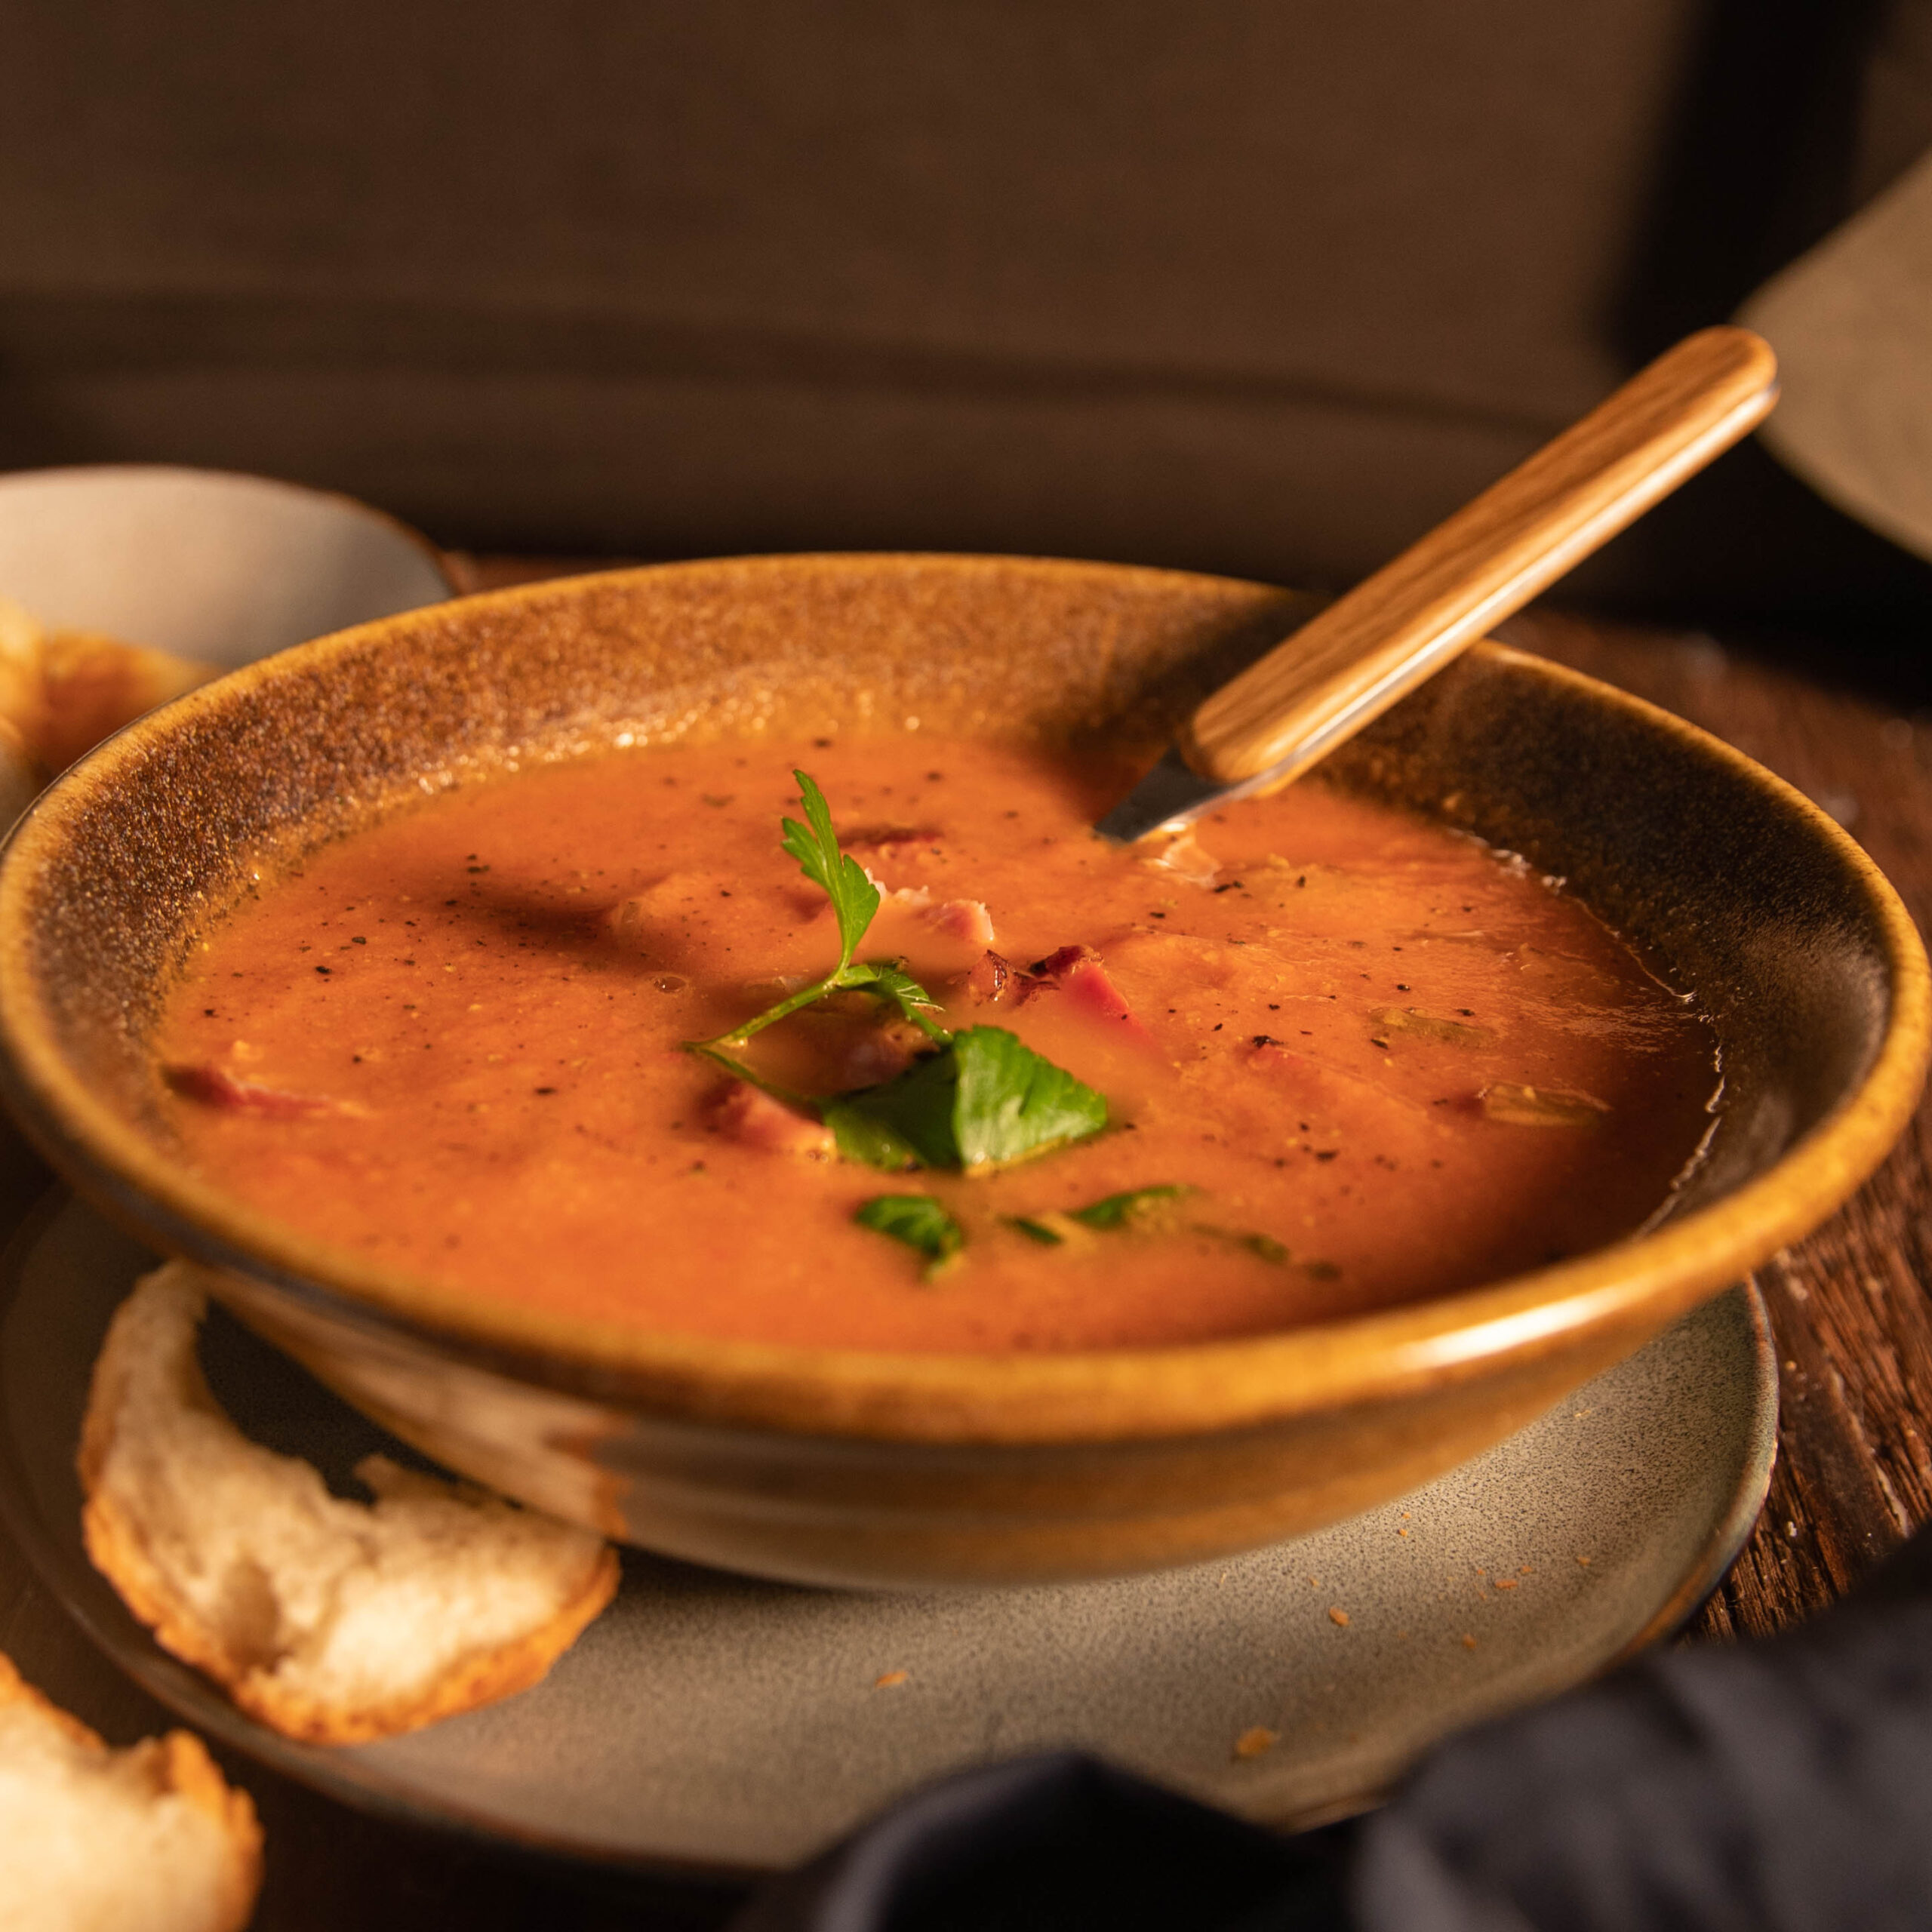 Three Aussie Farmers Cooked Harissa Hock Soup